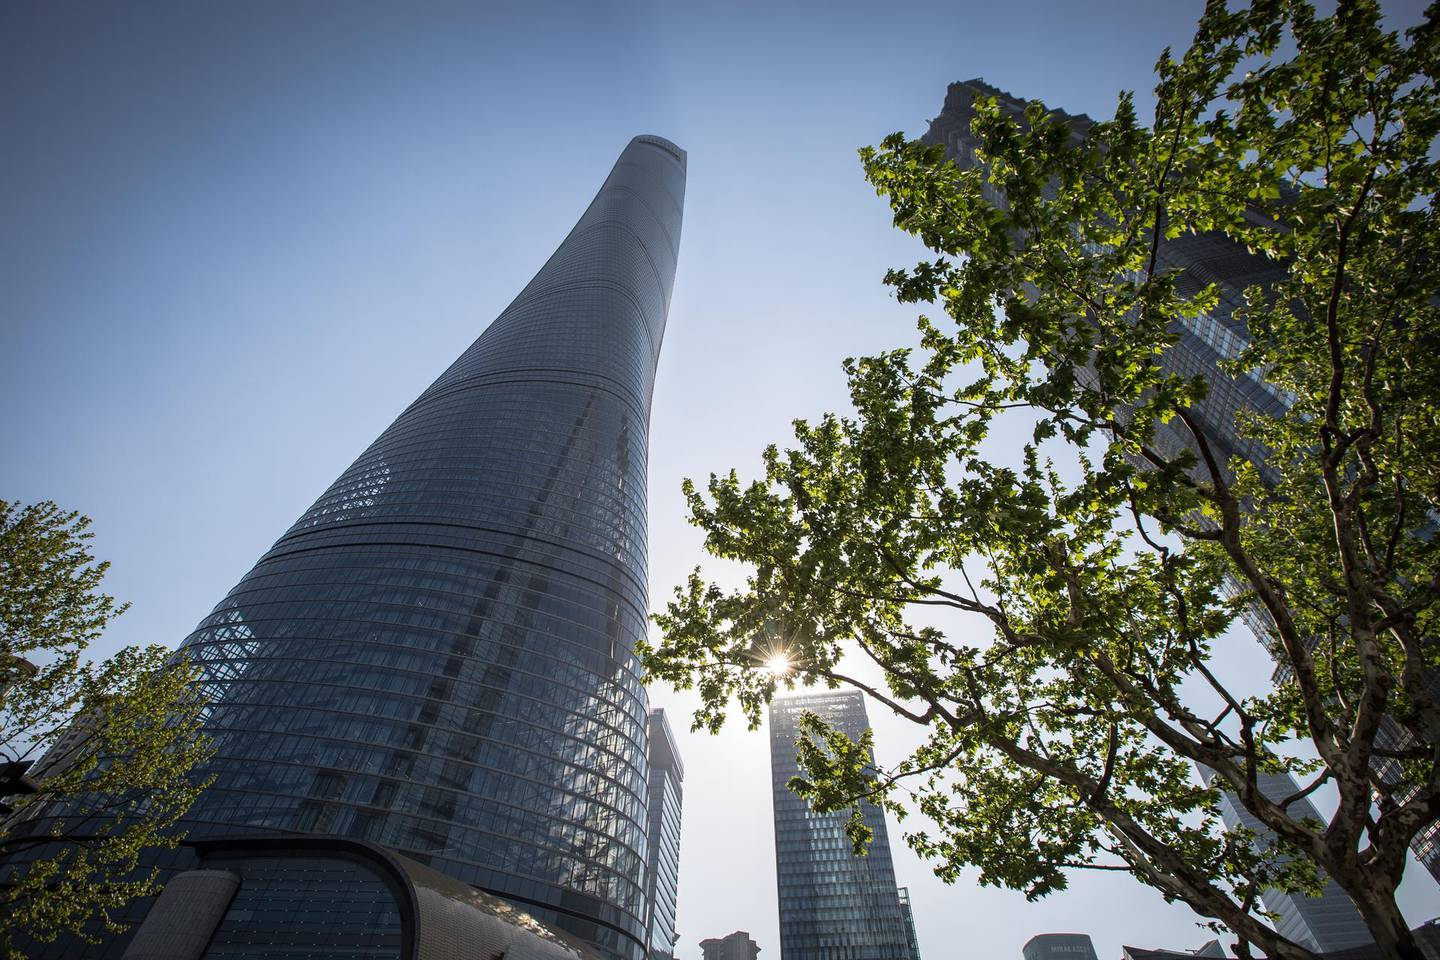 epa06793921 Shanghai Tower in Pudong area, Shanghai, China, 19 April 2018. The Shanghai Tower is 632 meters tall and has 128 floors. It is the tallest building in China and the world's second tallest building. The exterior of the building resembles a snake as it spirals upwards. The sky is the limit when it comes to tall buildings, which has sparked a worldwide race between nations to construct ever higher.  EPA-EFE/ROMAN PILIPEY